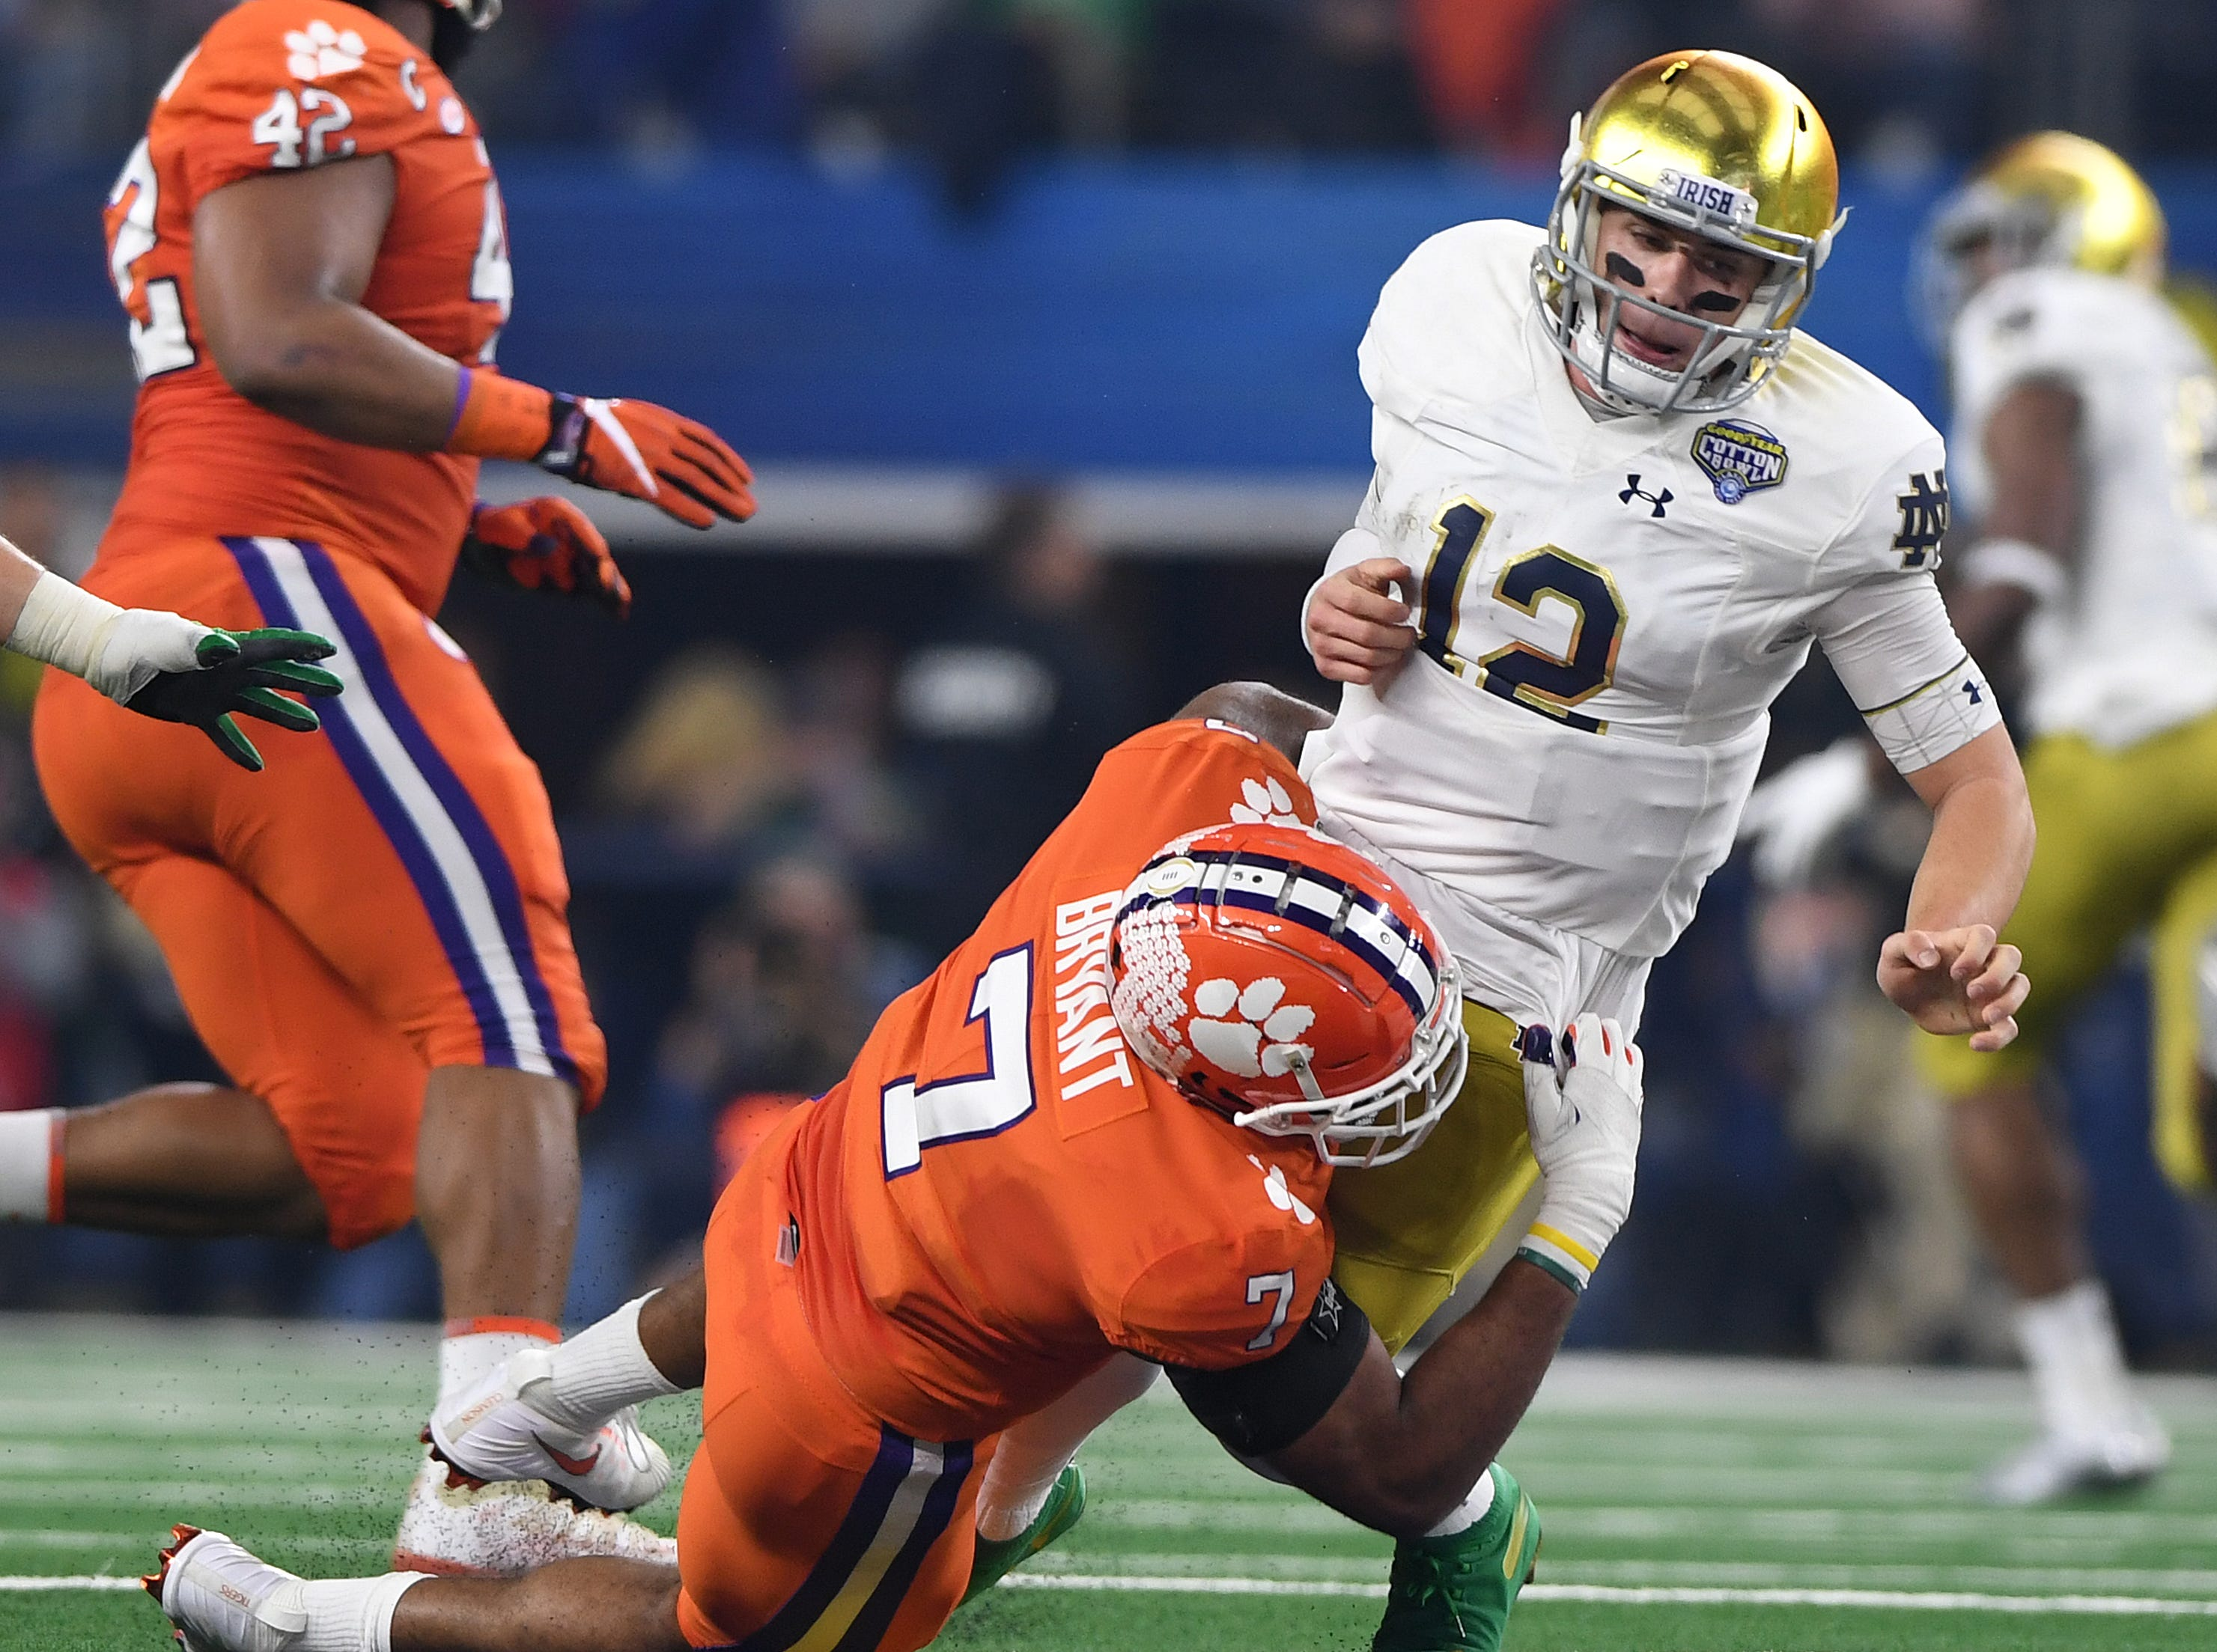 Clemson defensive lineman Austin Bryant (7) brings down Notre Dame quarterback Ian Book (12) during the 2nd quarter of the Goodyear Cotton Bowl at AT&T stadium in Arlington, TX Saturday, December 29, 2018.